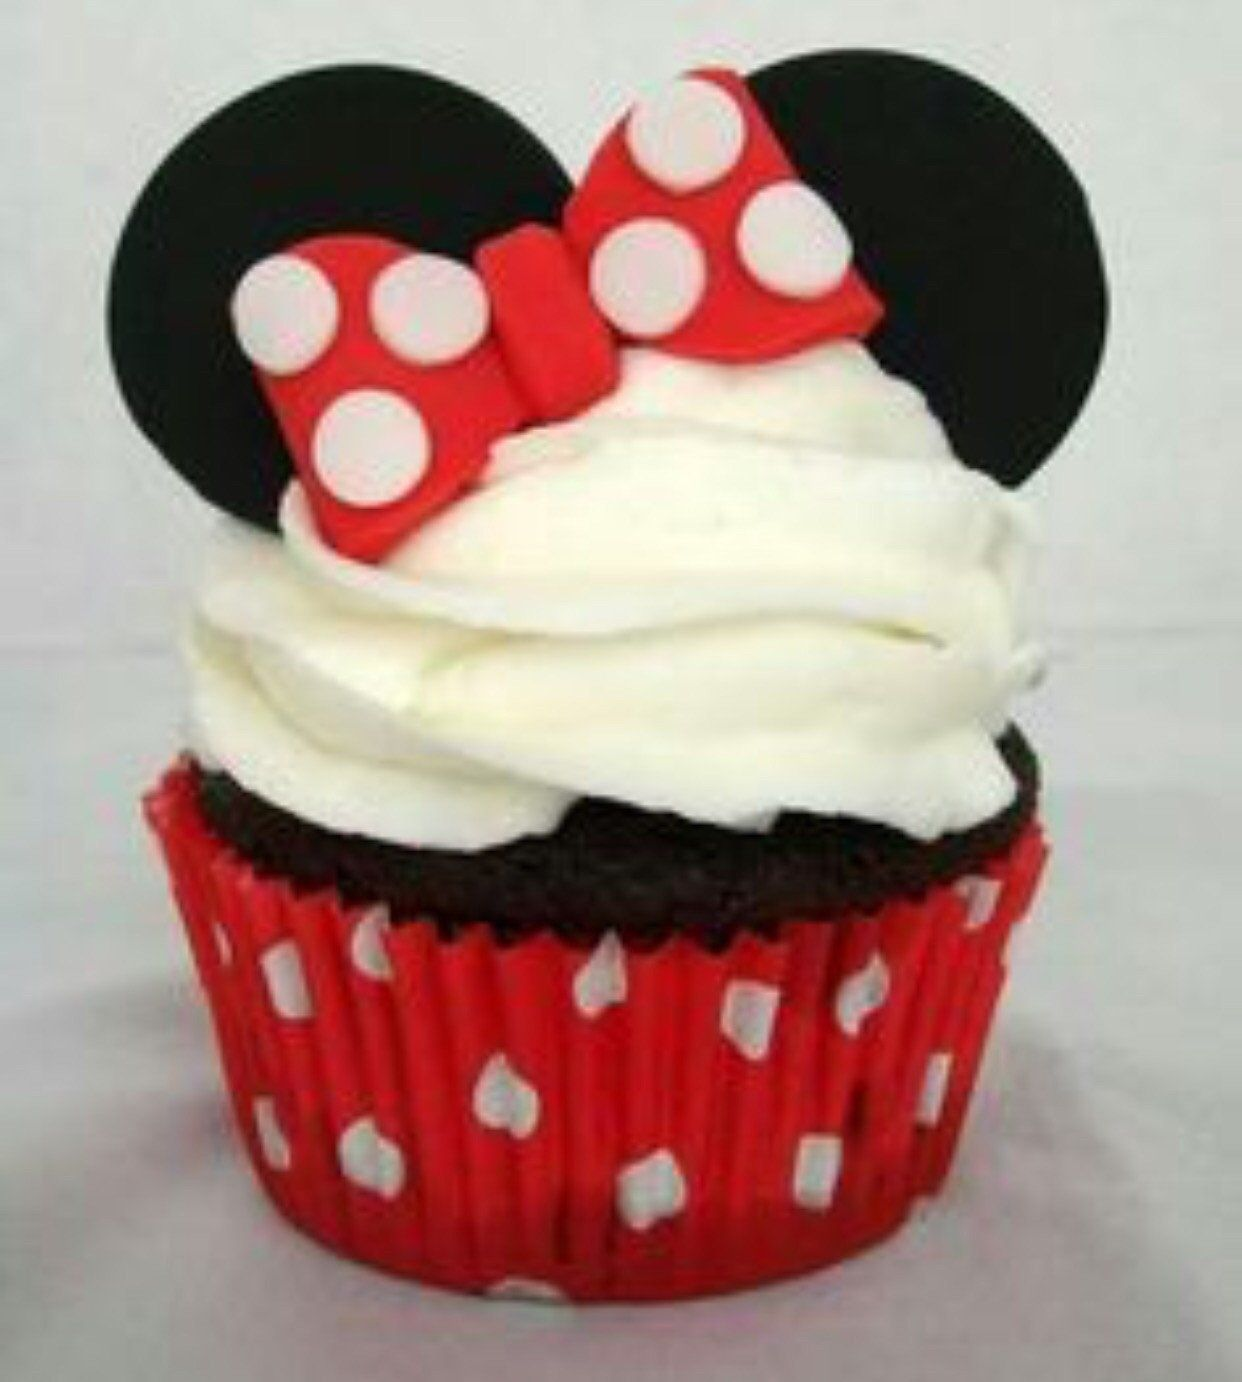 San Diego Bakery. Minnie And Mickey Imagined As Cupcakes